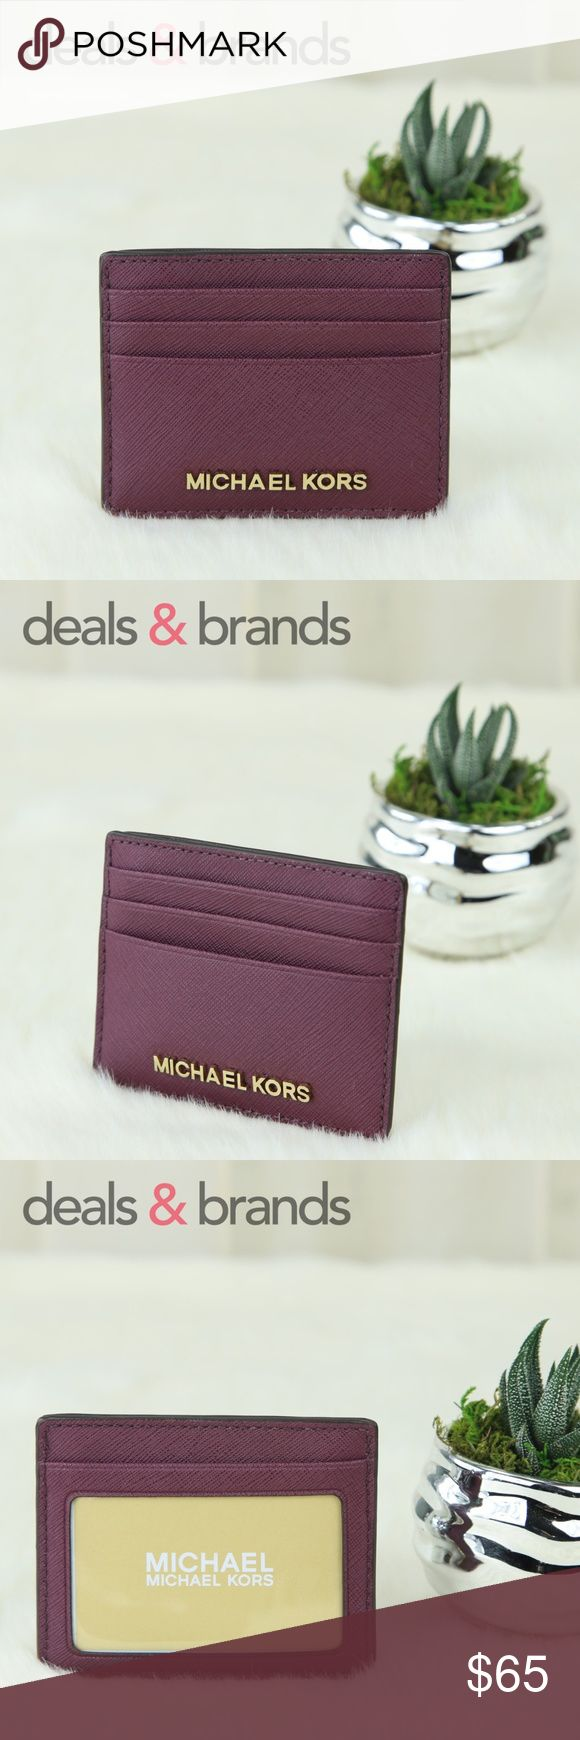 "NWT MICHAEL KORS Jet Set Travel Card Holder Plum MICHAEL KORS   JET SET TRAVEL SAFFIANO LEATHER LG Card Holder 35H6GTVD7L in PLUM ITEM NO: 35H6GTVD7L RETAIL PRICE: $68.00 COLOR: Plum CONDITION: NEW with TAGS   Saffiano Leather with matching trim Gold tone hardware Open top closure Michael Kors lettering logo on front 3 credit card slots on front, ID window at the back 1 multi-function slip open pocket in the middle Michael Kors signature logo fabric lining 4""(W) x 3.25""(H) Michael Kors Bags…"